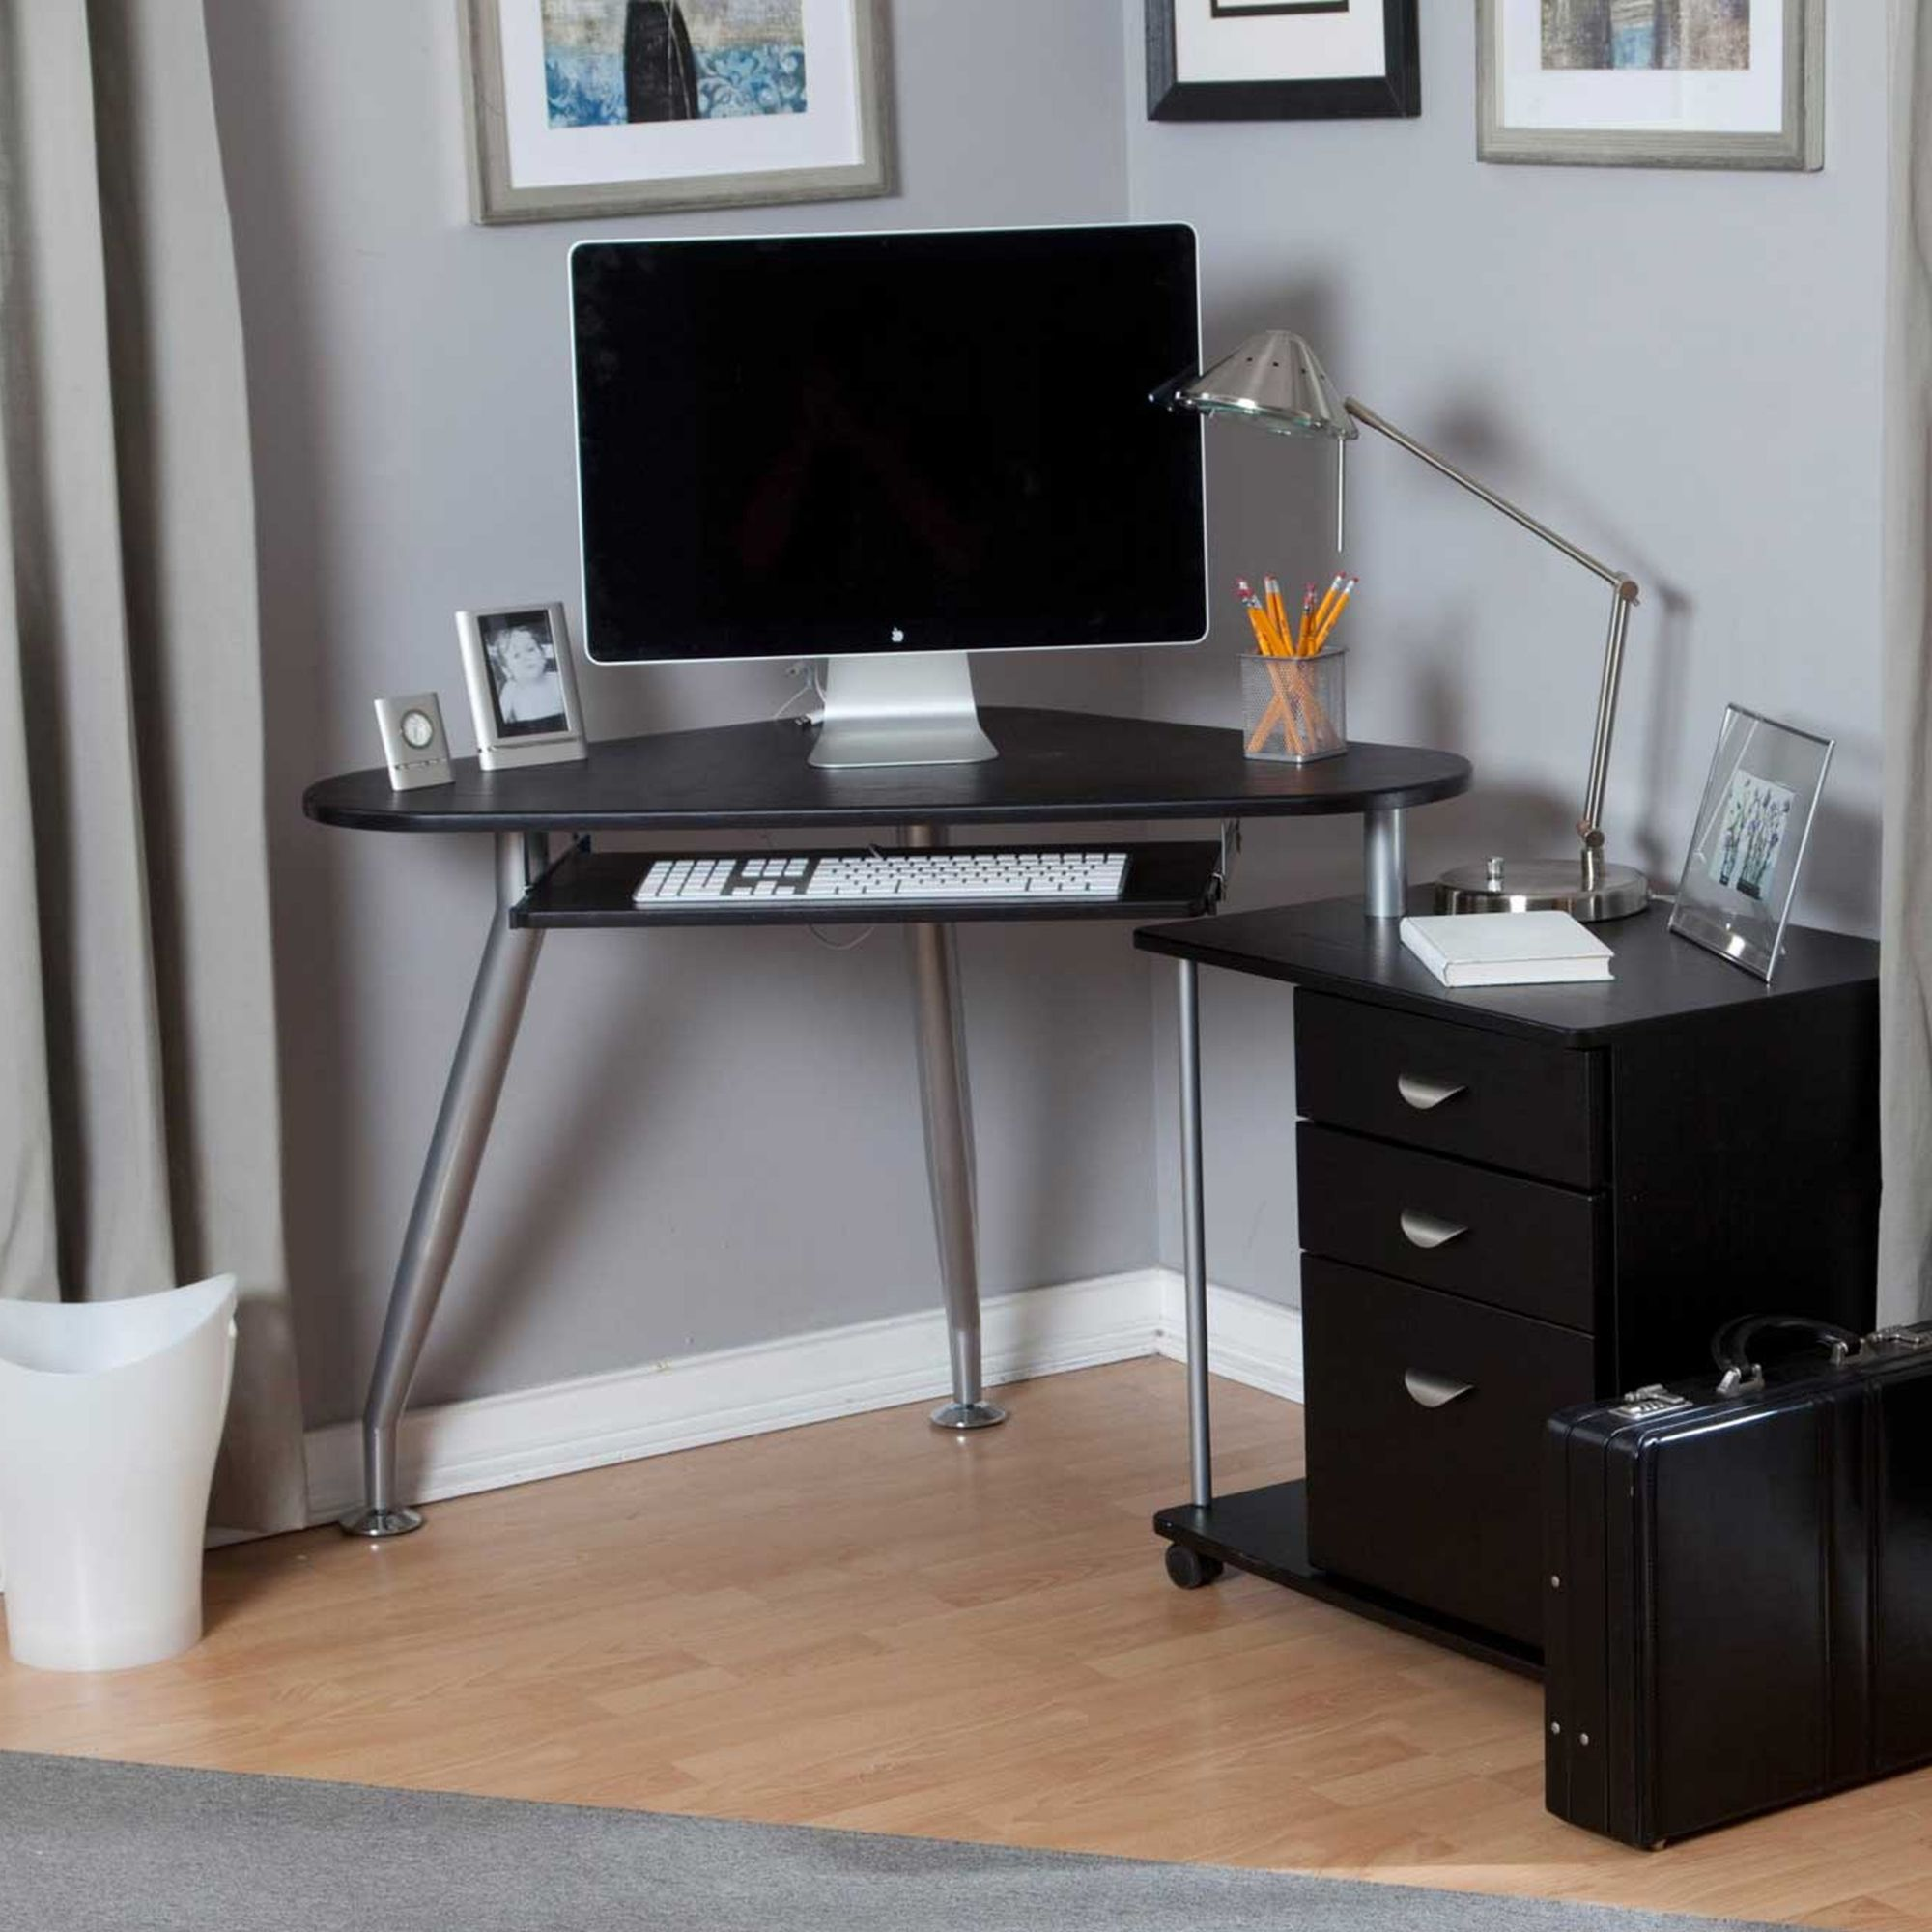 Best Corner Desk Home Office Organization Ideas For Small Check More At Http